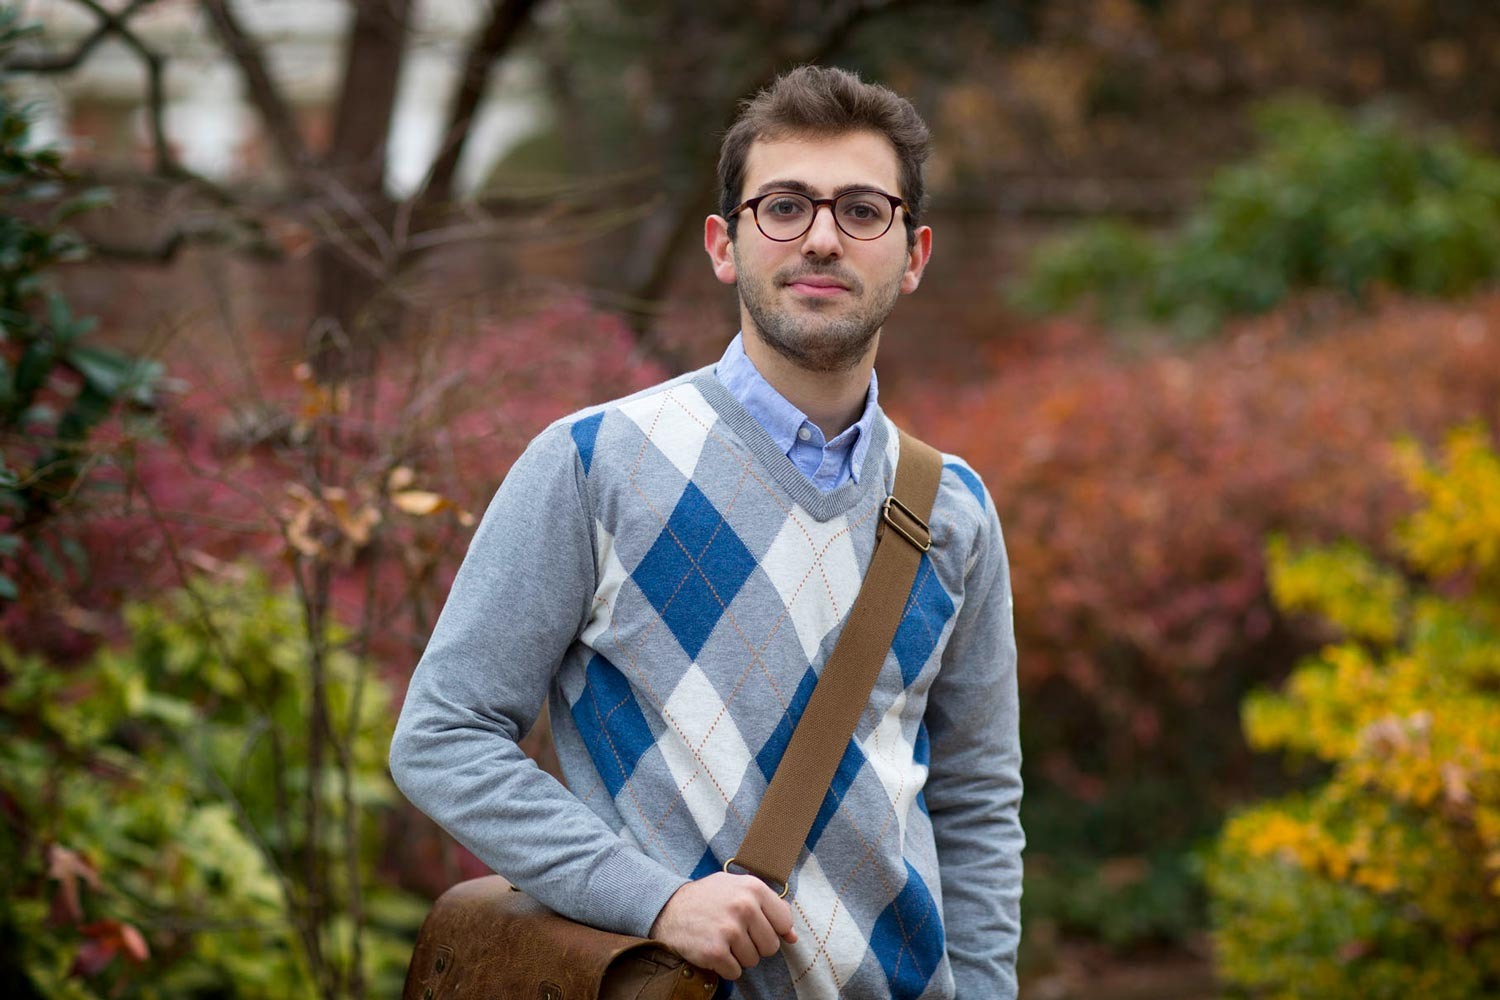 Leon Yacoubian vowed to do something to help the Armenian people, even as he pursues his undergraduate degree at UVA. (Photo by Dan Addison, University Communications)